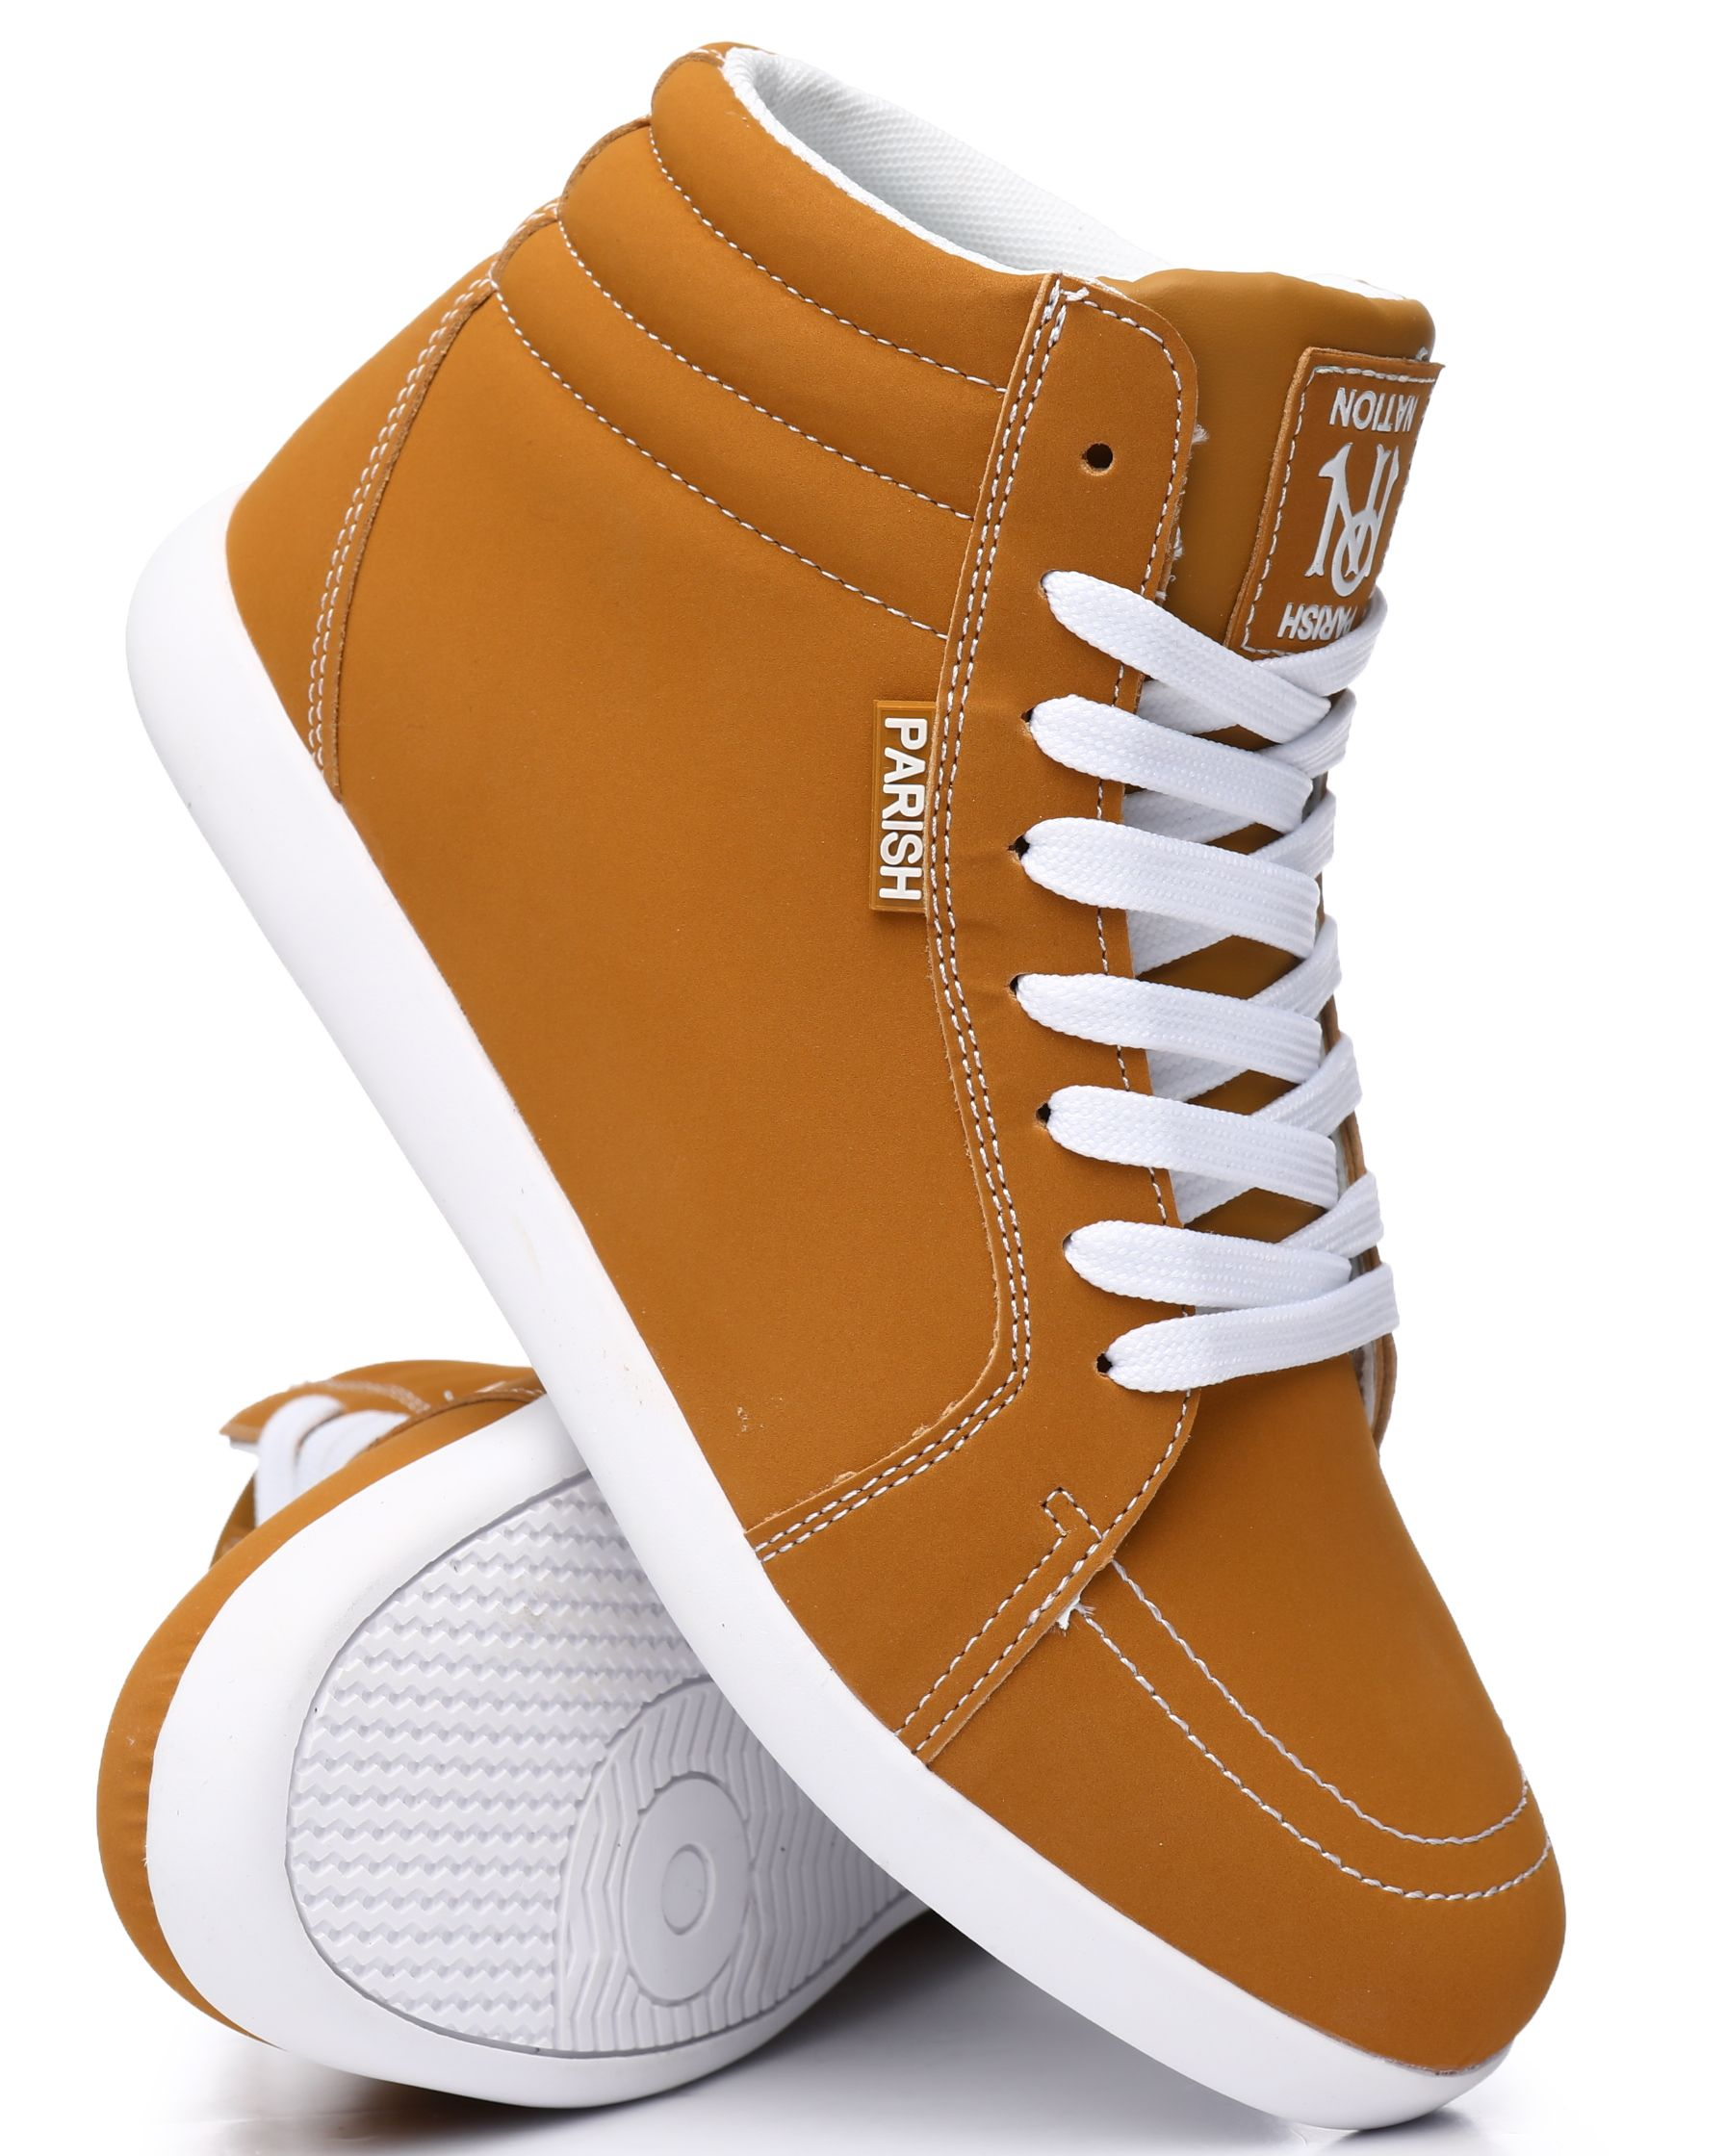 online retailer 8bcc4 9f4d2 High Top Sneakers Mens Footwear from Parish. Find Parish fashion  more at  DrJays.com